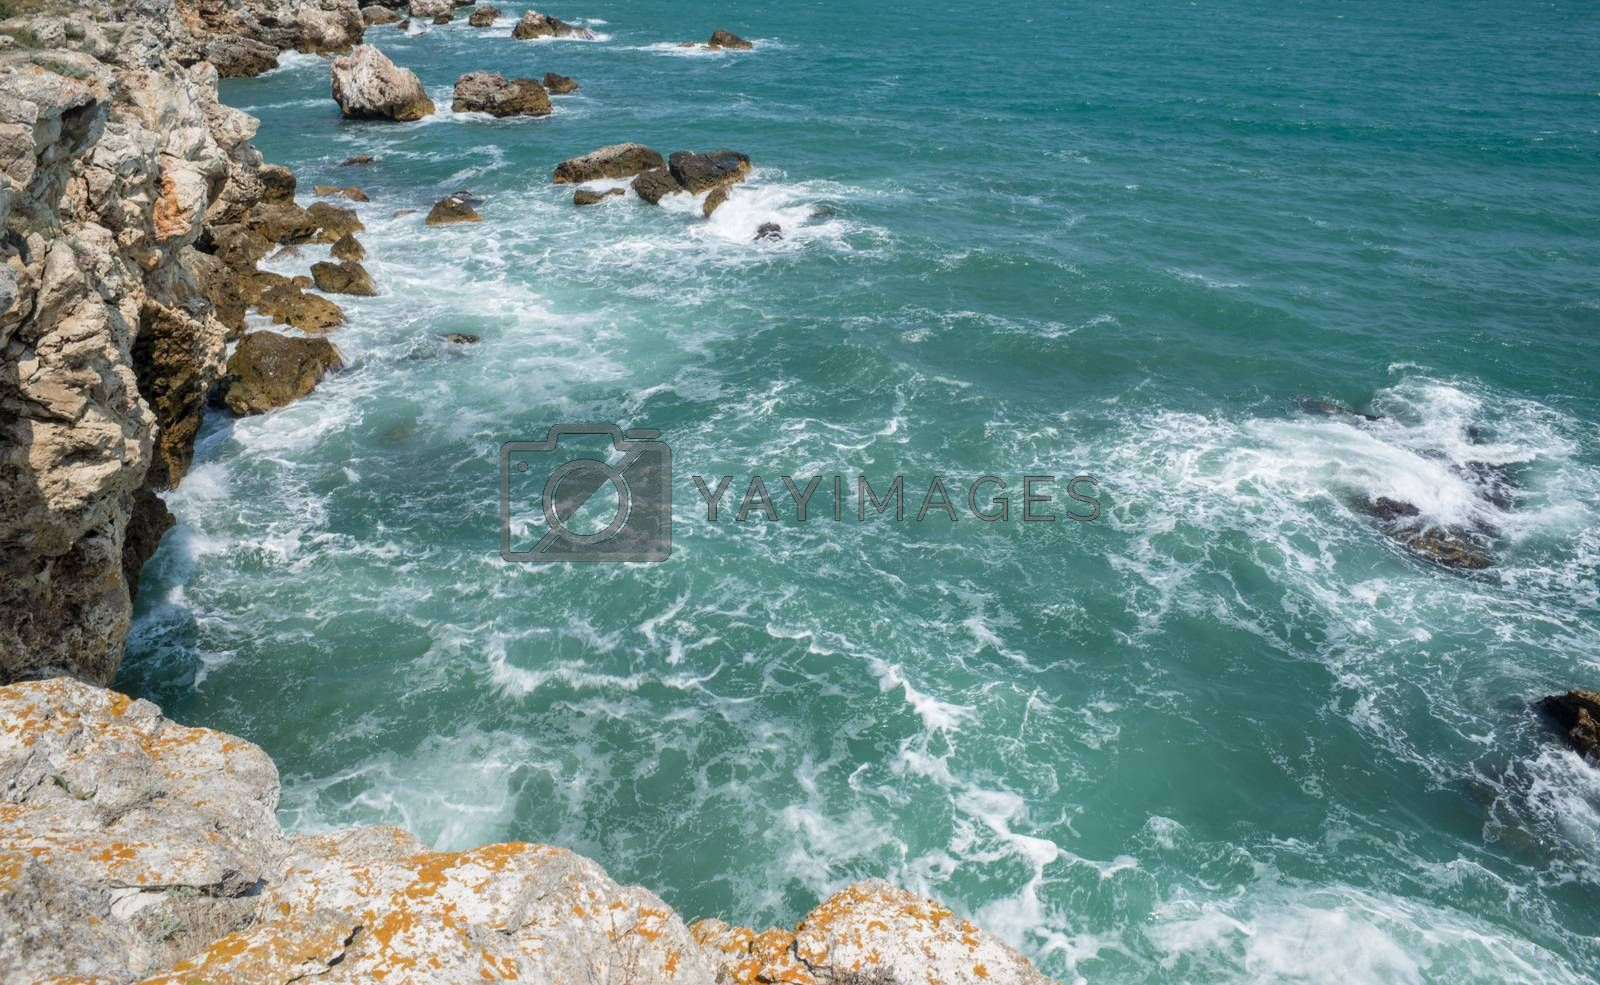 Waves pounding a beautiful rock shore of sea or ocean, Tyulenovo, Bulgaria.